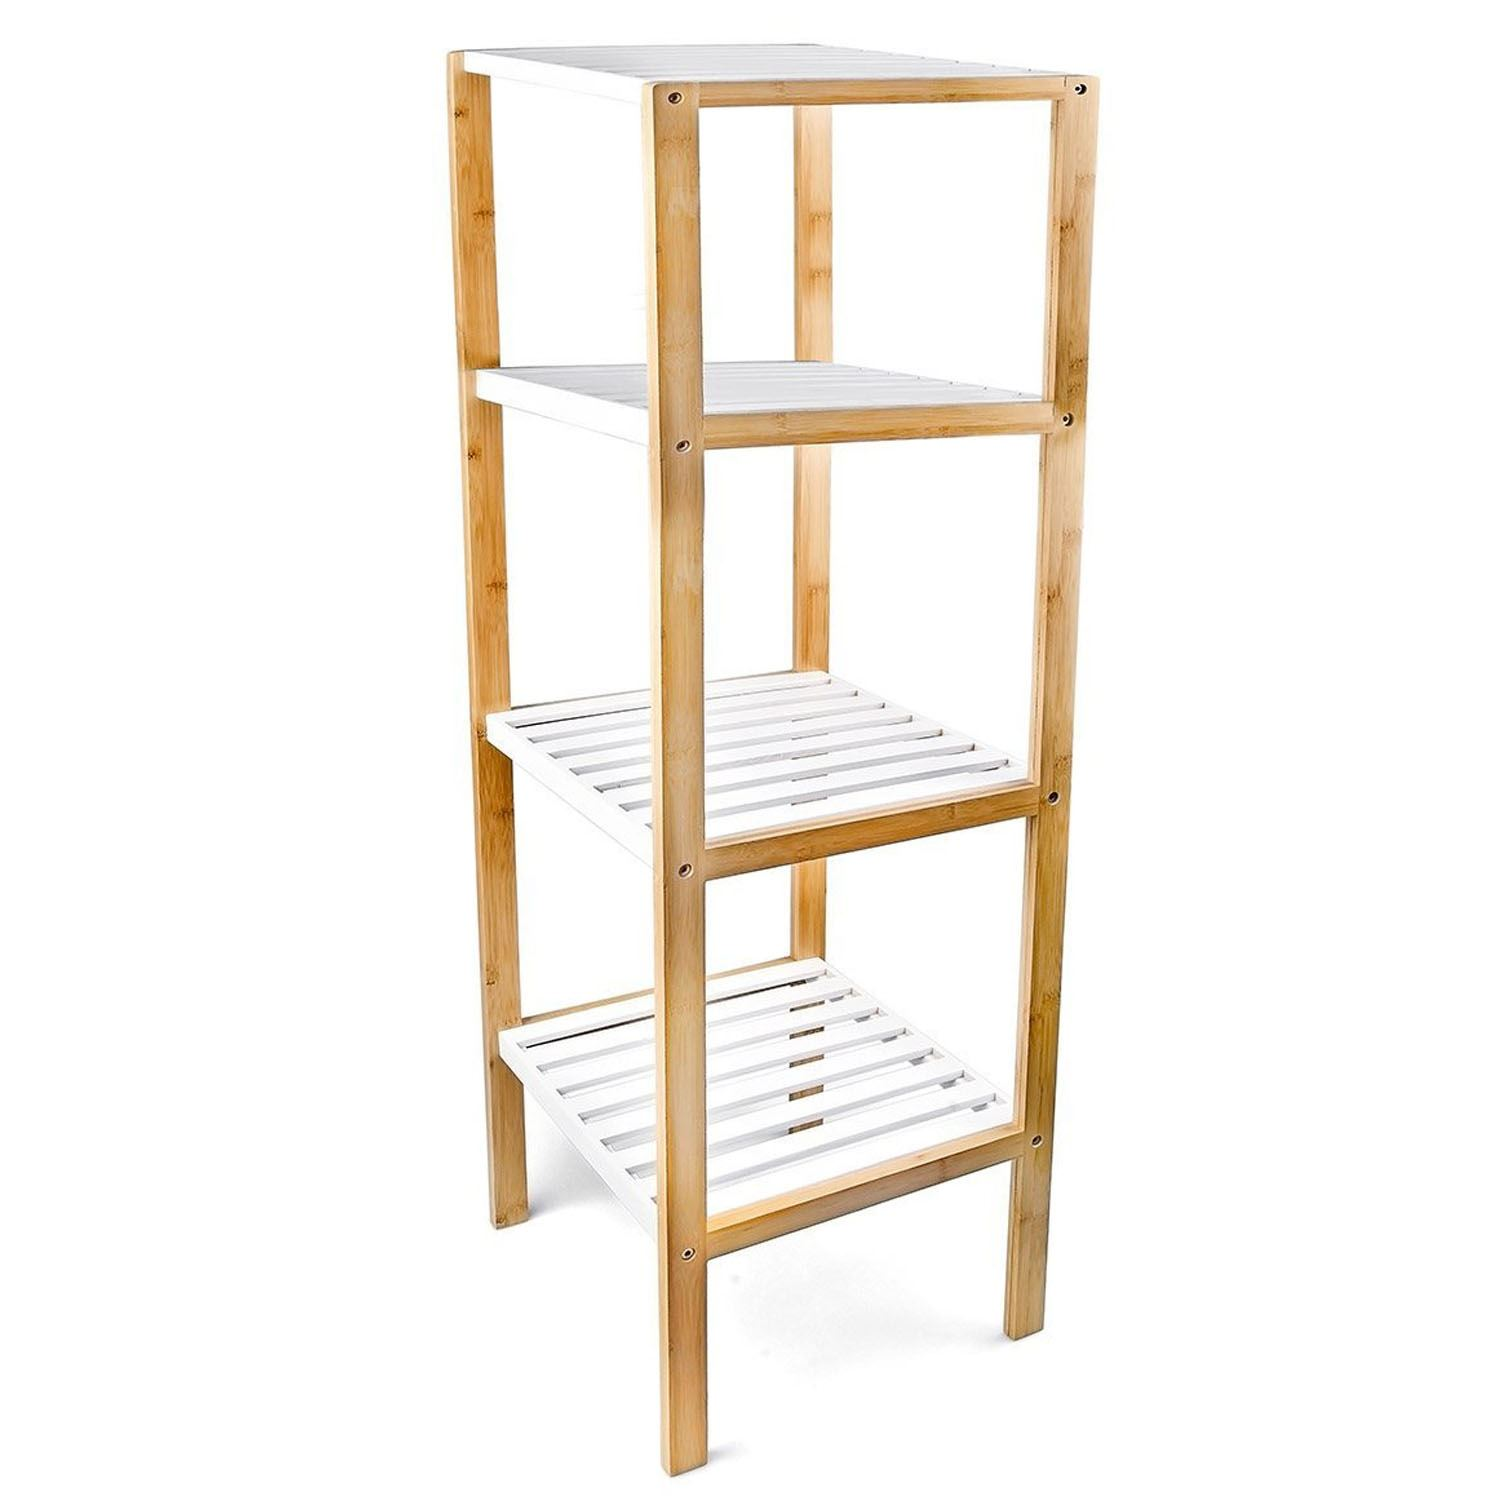 view f constrain qlt tiered urban shop zoom hei shelf fit outfitters bamboo slide redesign